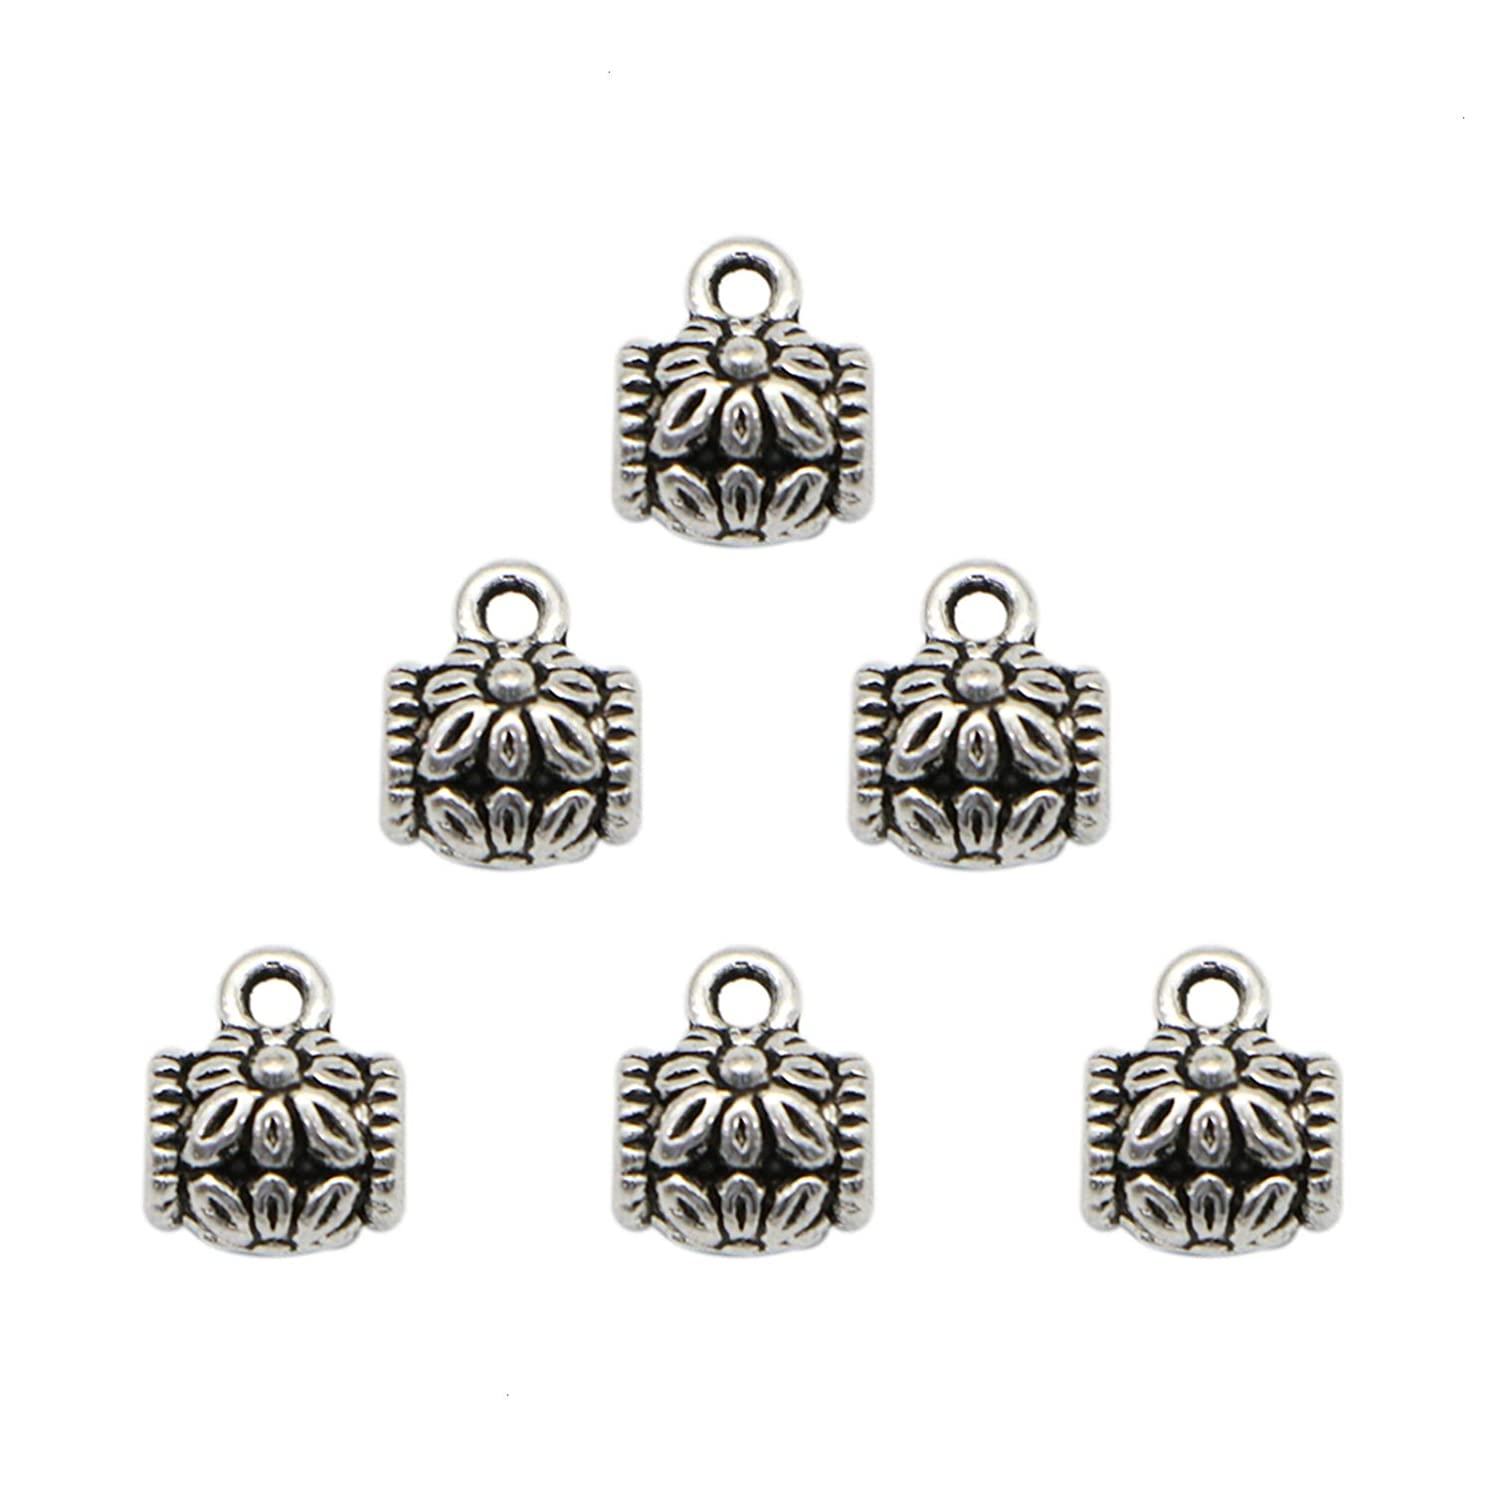 Monrocco 80 Pieces Silver Connector Bail Beads Spacer Beads with Loop Jewelry Making